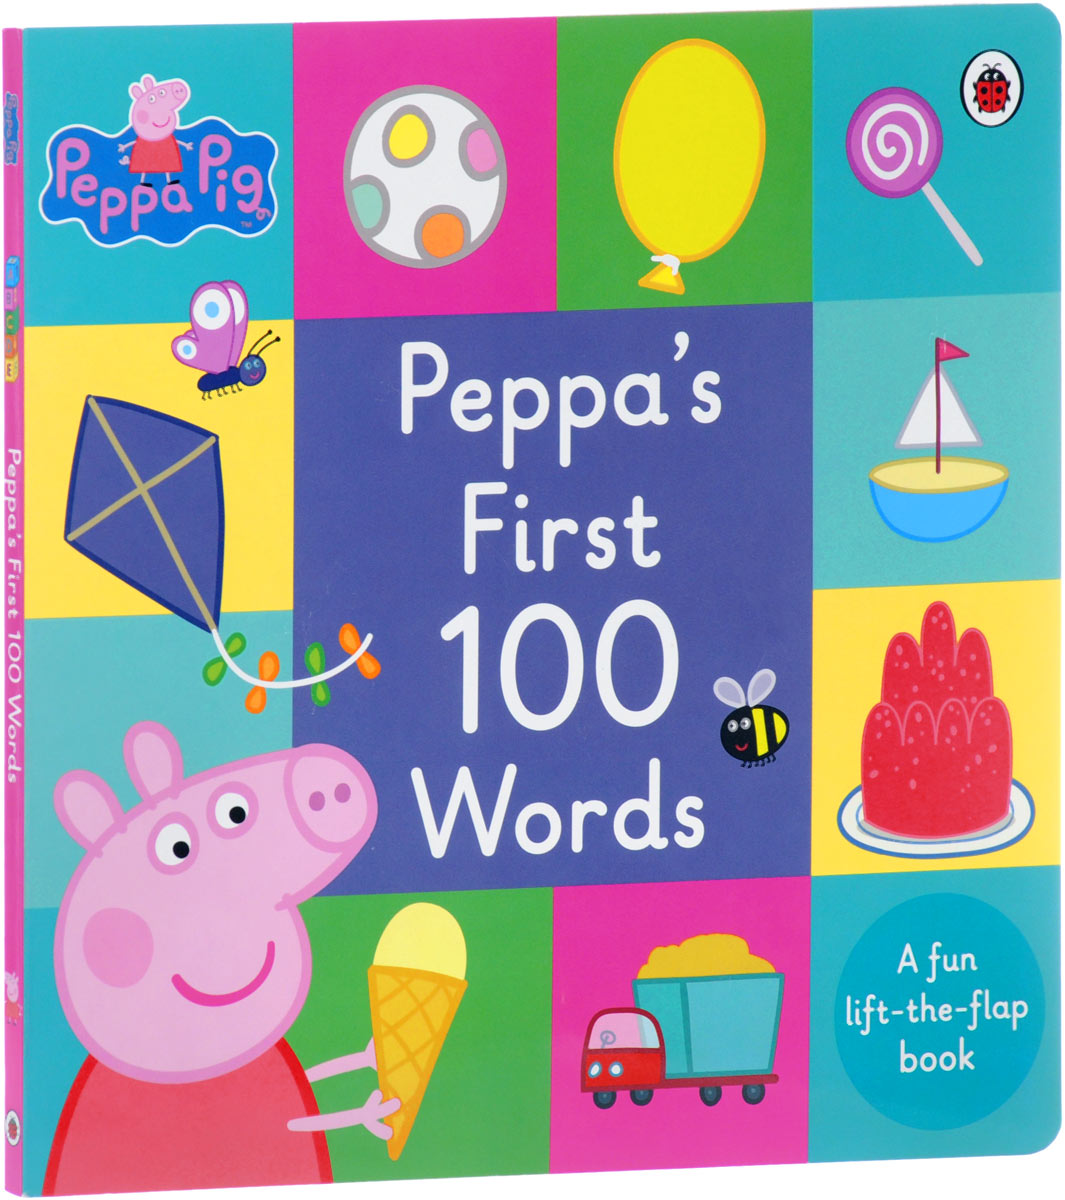 Peppa Pig: Peppa's First 100 Words mendes valerie first 100 words